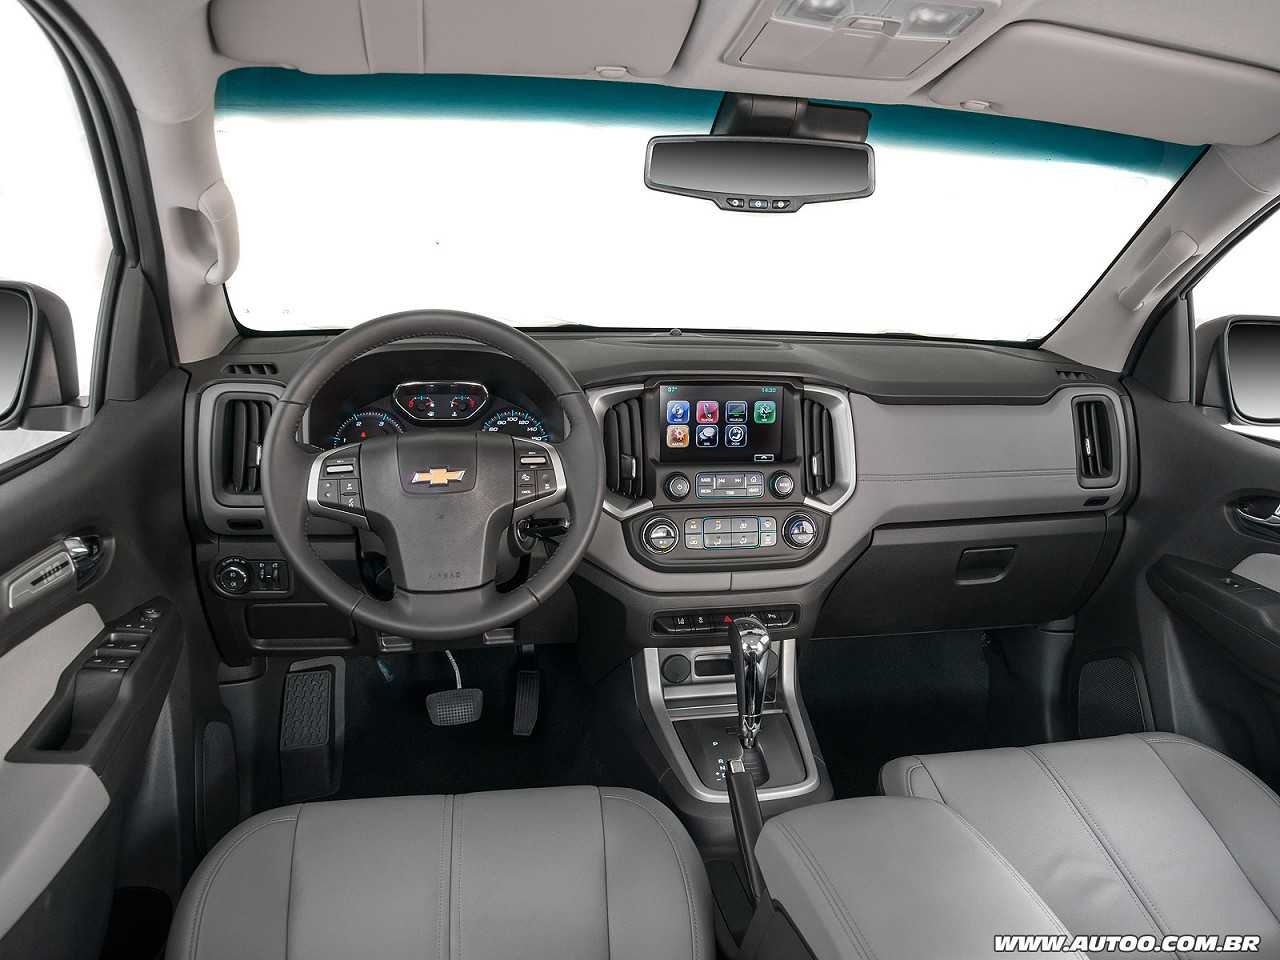 ChevroletS10 2018 - painel